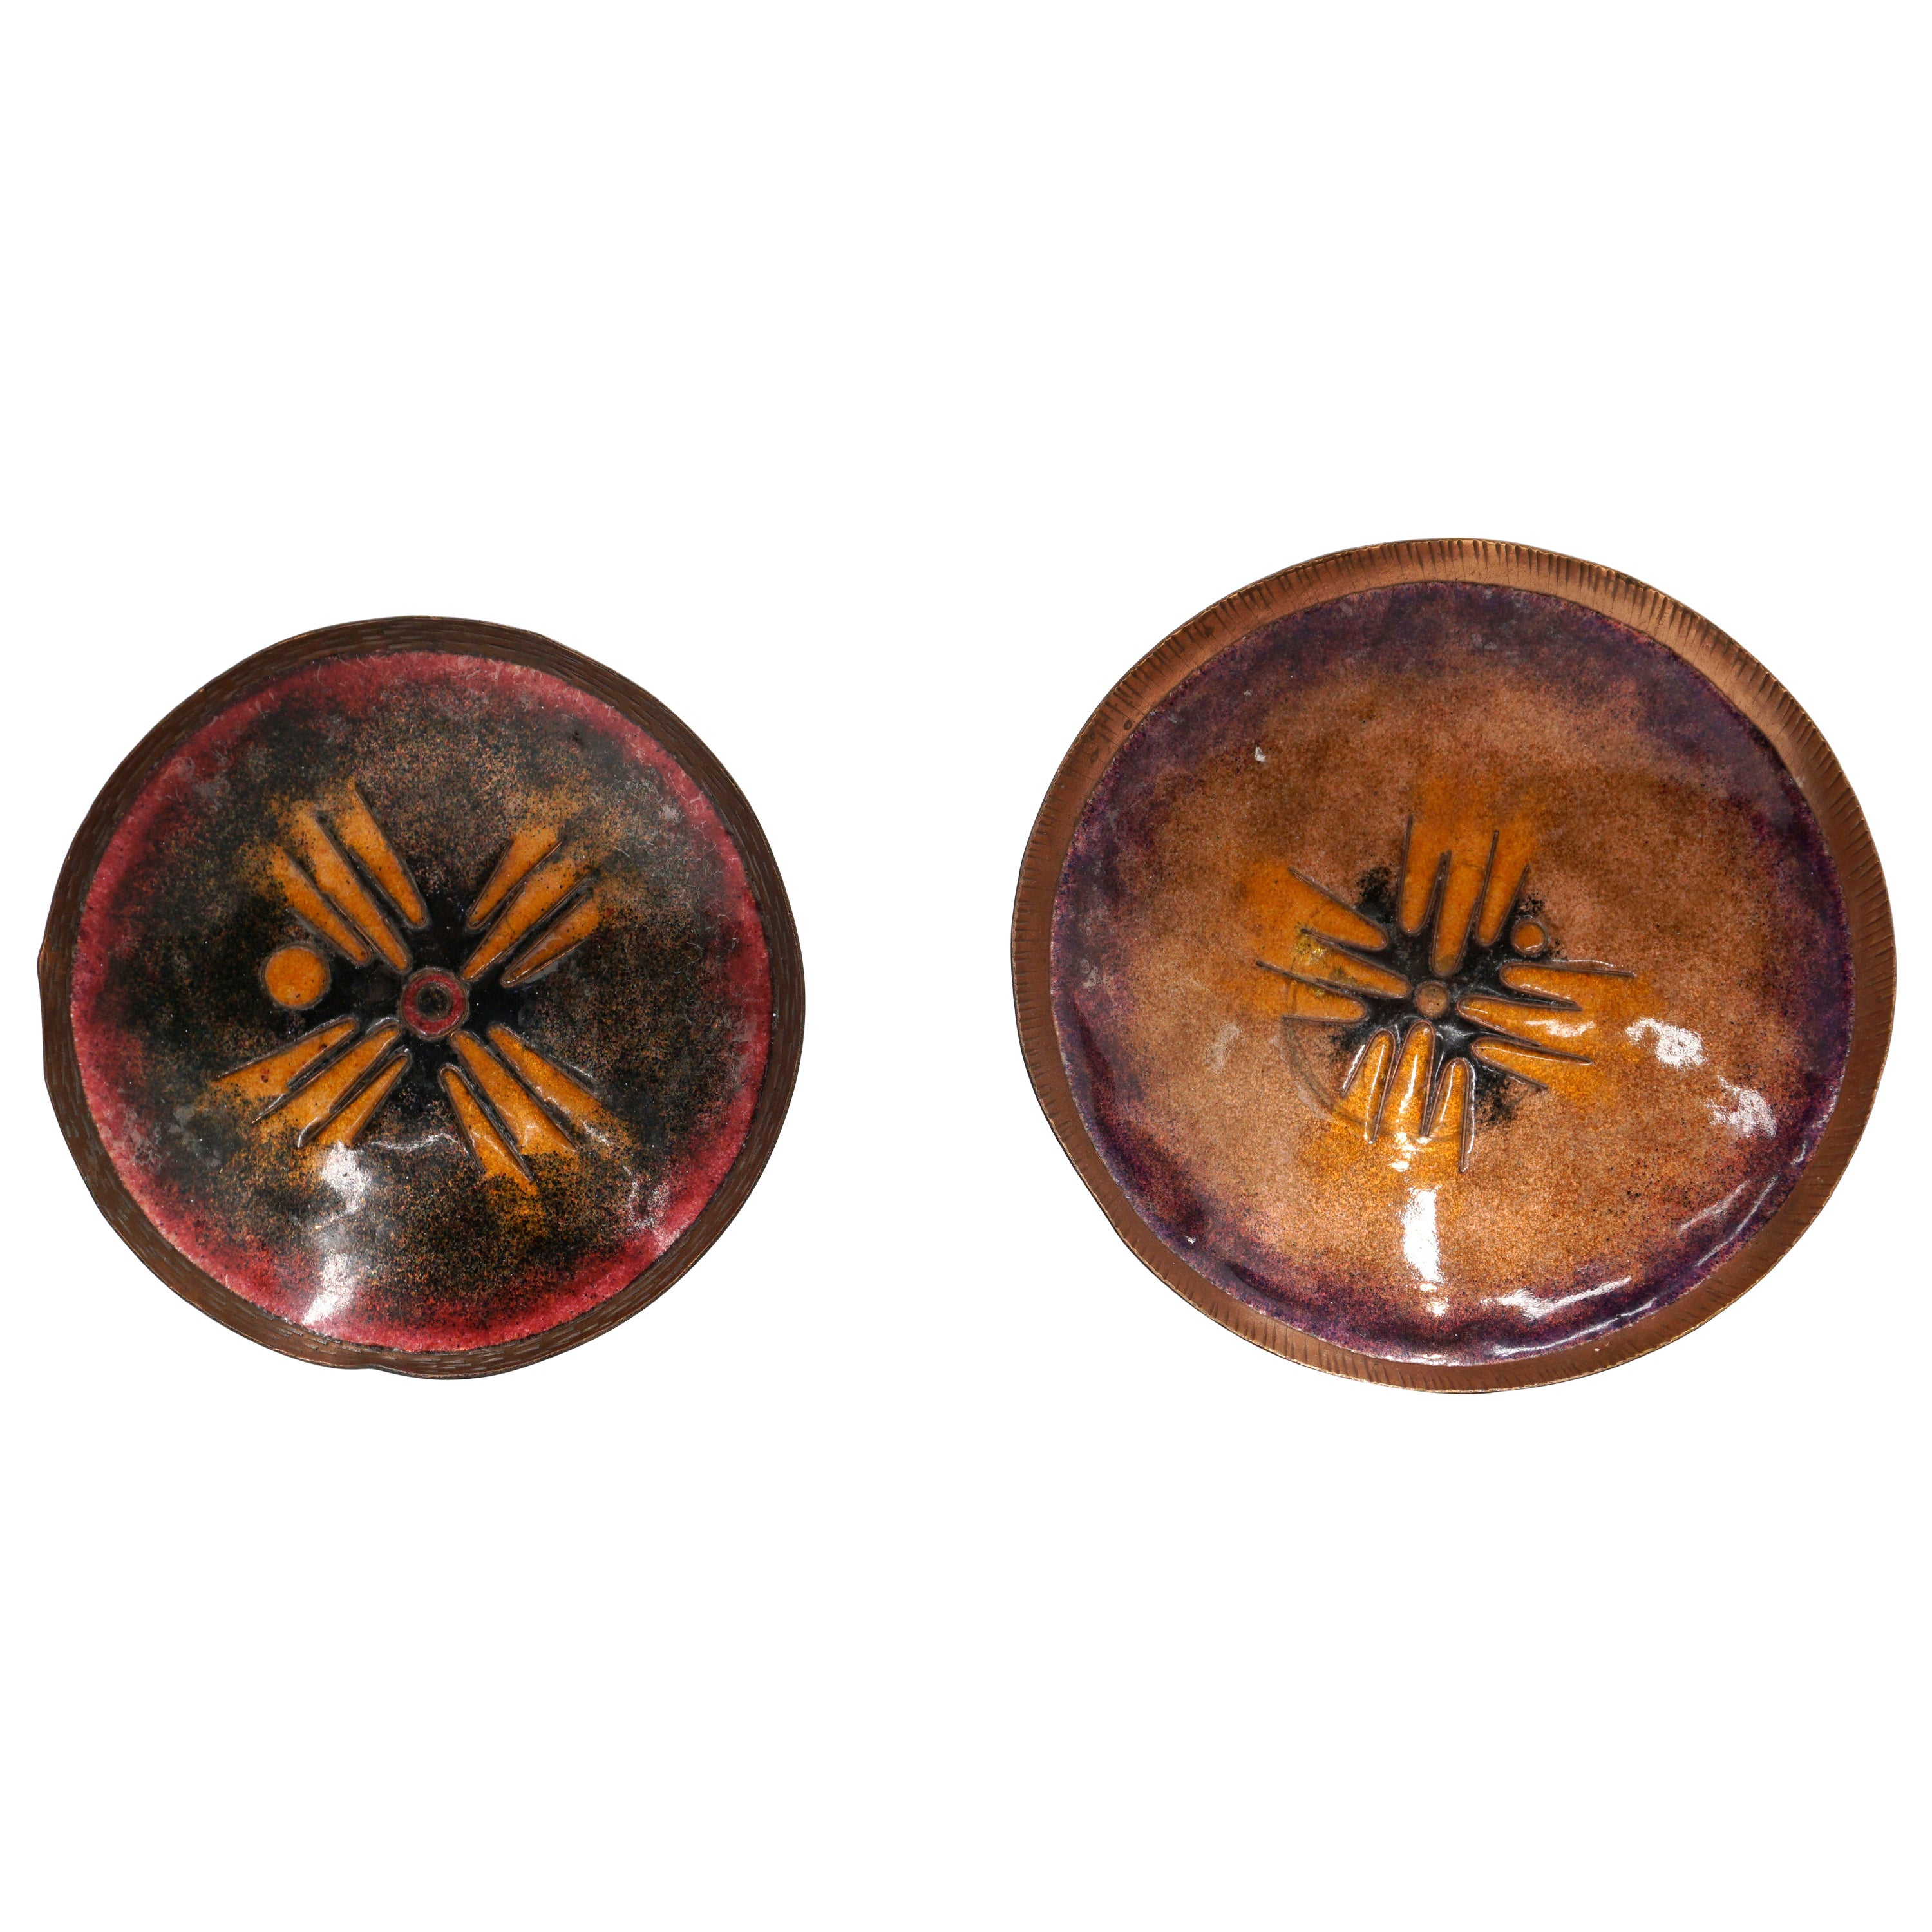 Pair of Enamel on Copper Bowls / Dishes, Likely Danish, Orange, Brown, Black